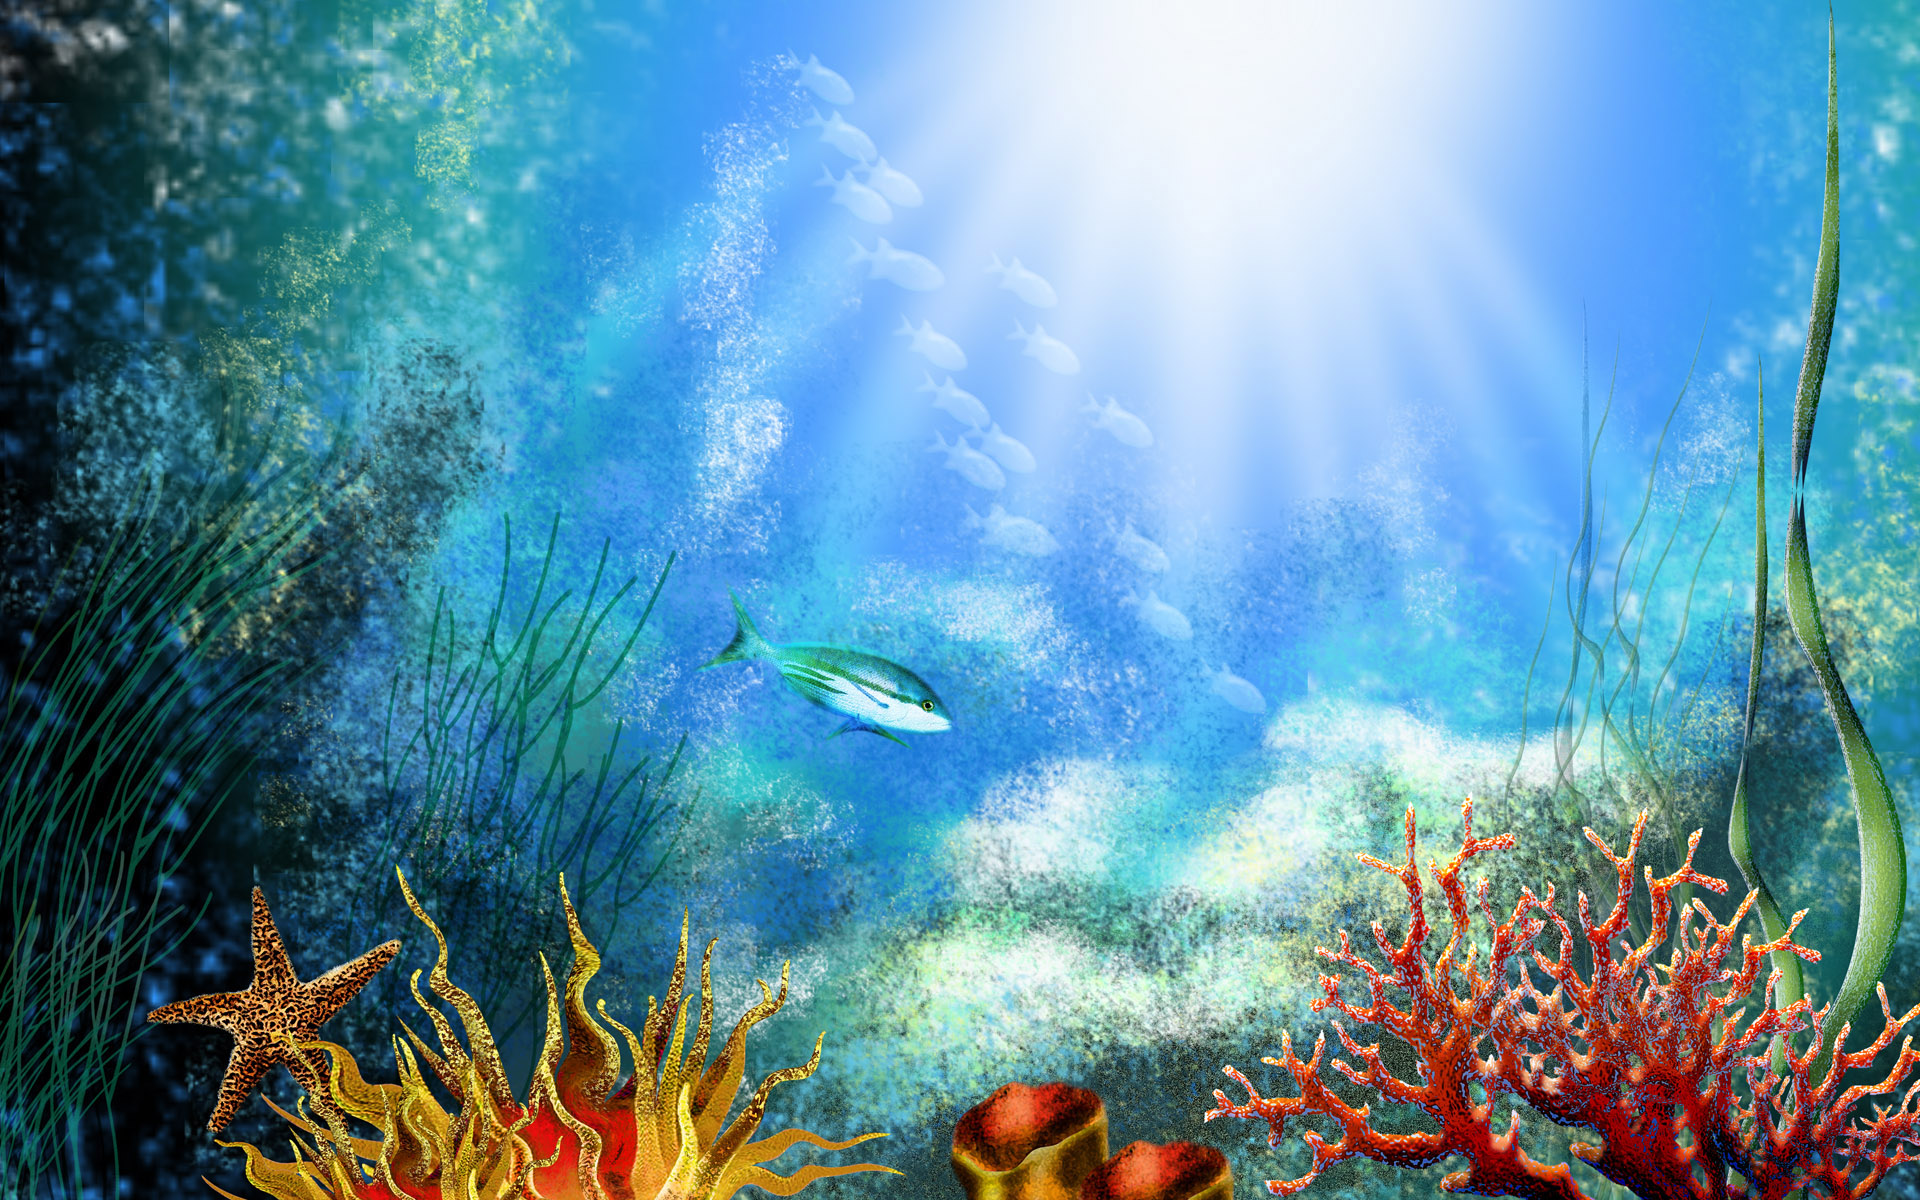 The underwater environment holds an irresistible charm for many feel